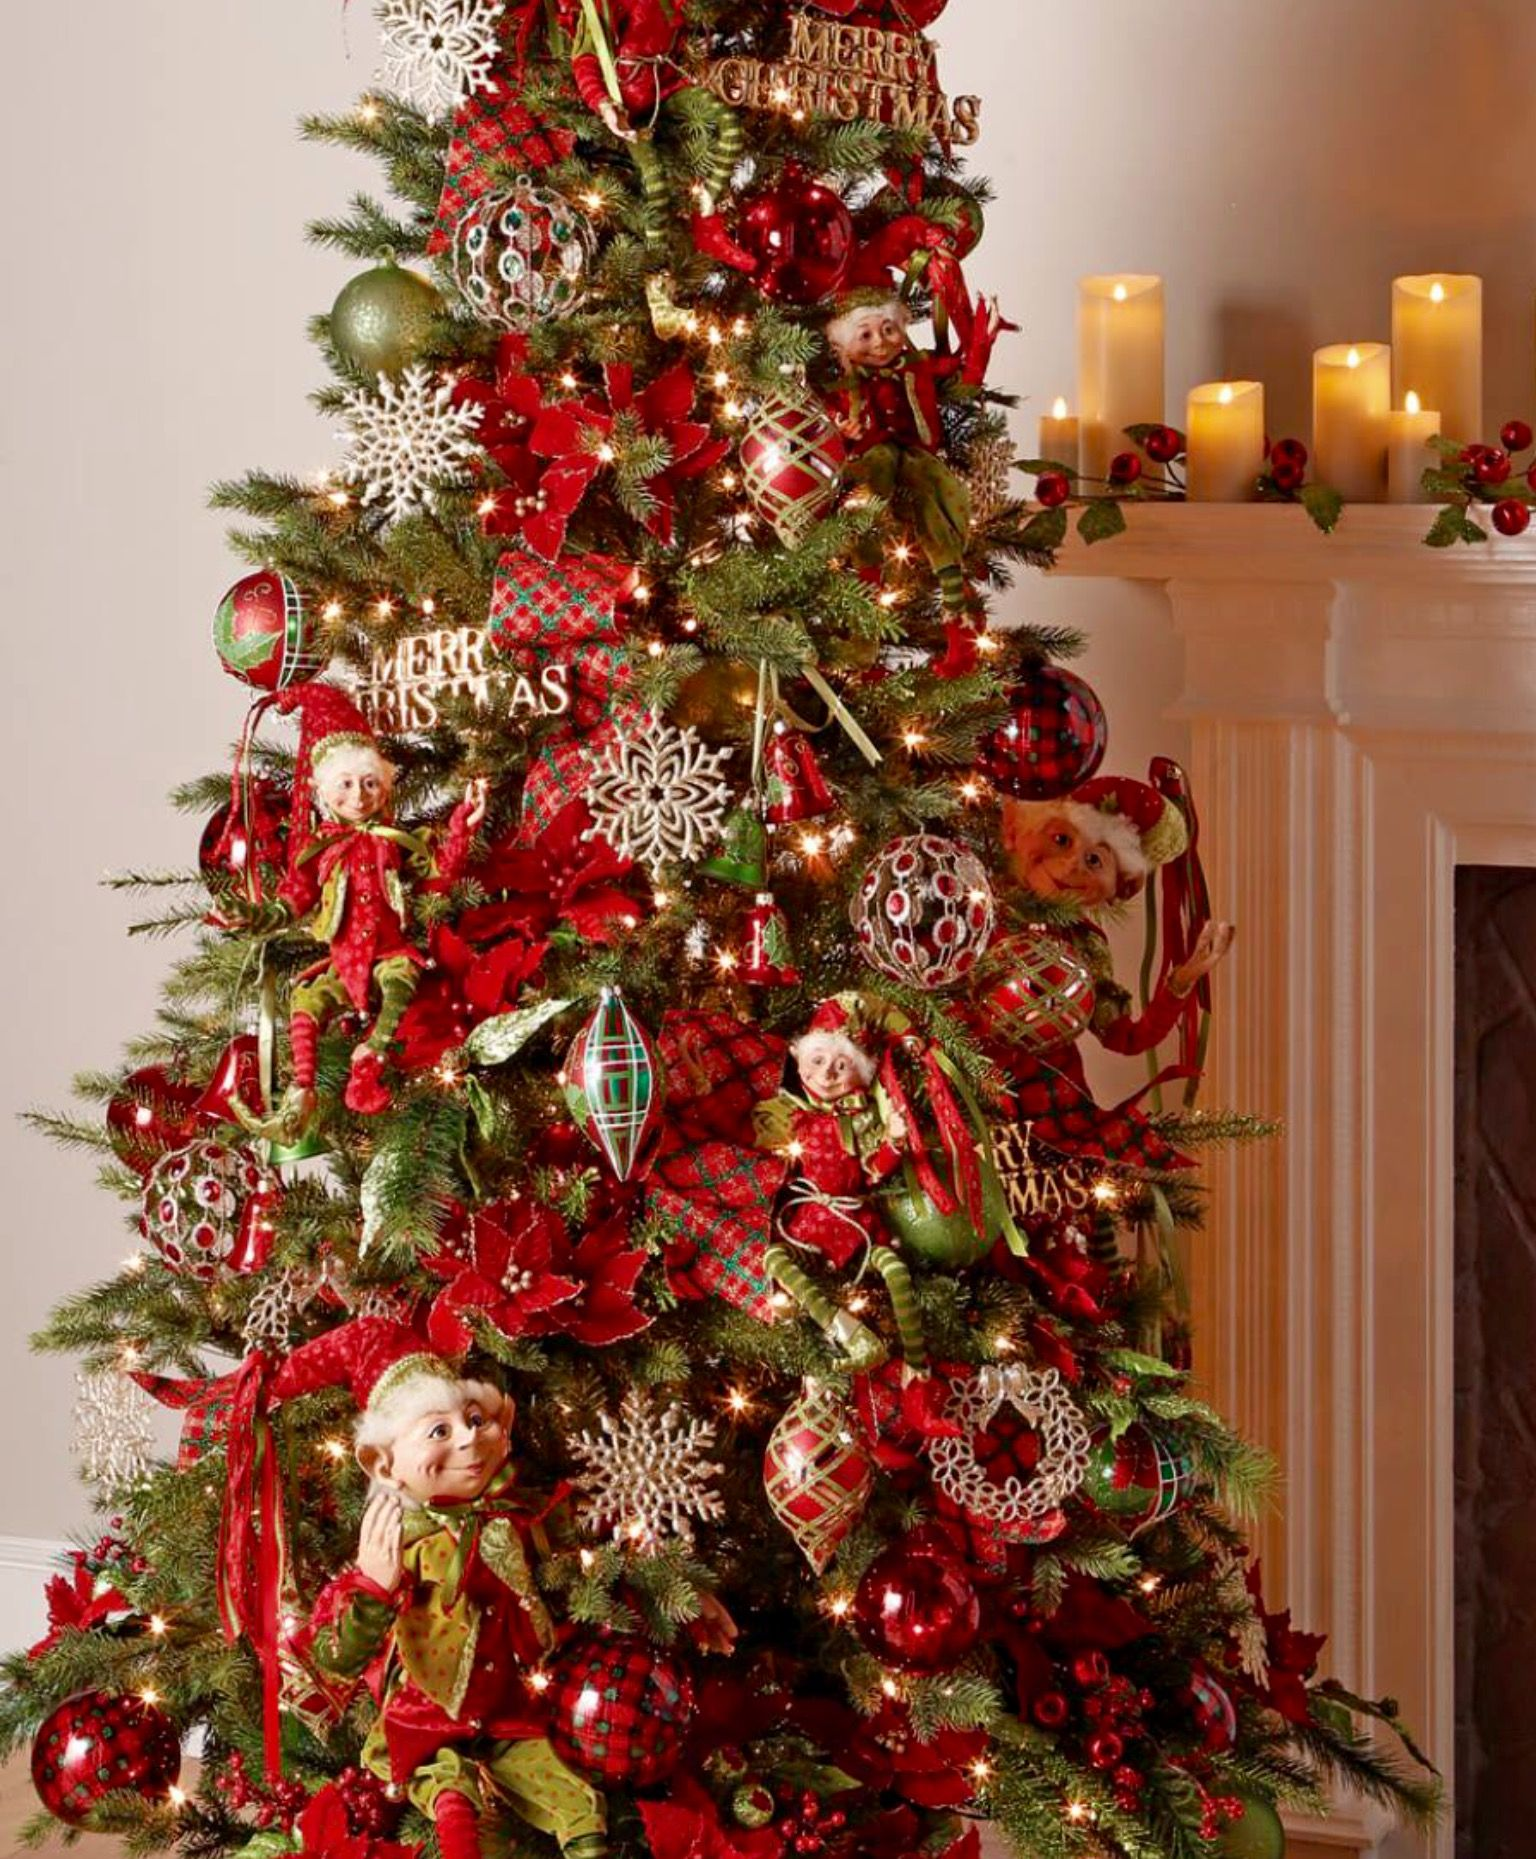 Whimsical Christmas Trees Ideas: Pin By Shirley Murphy On Christmas Tree